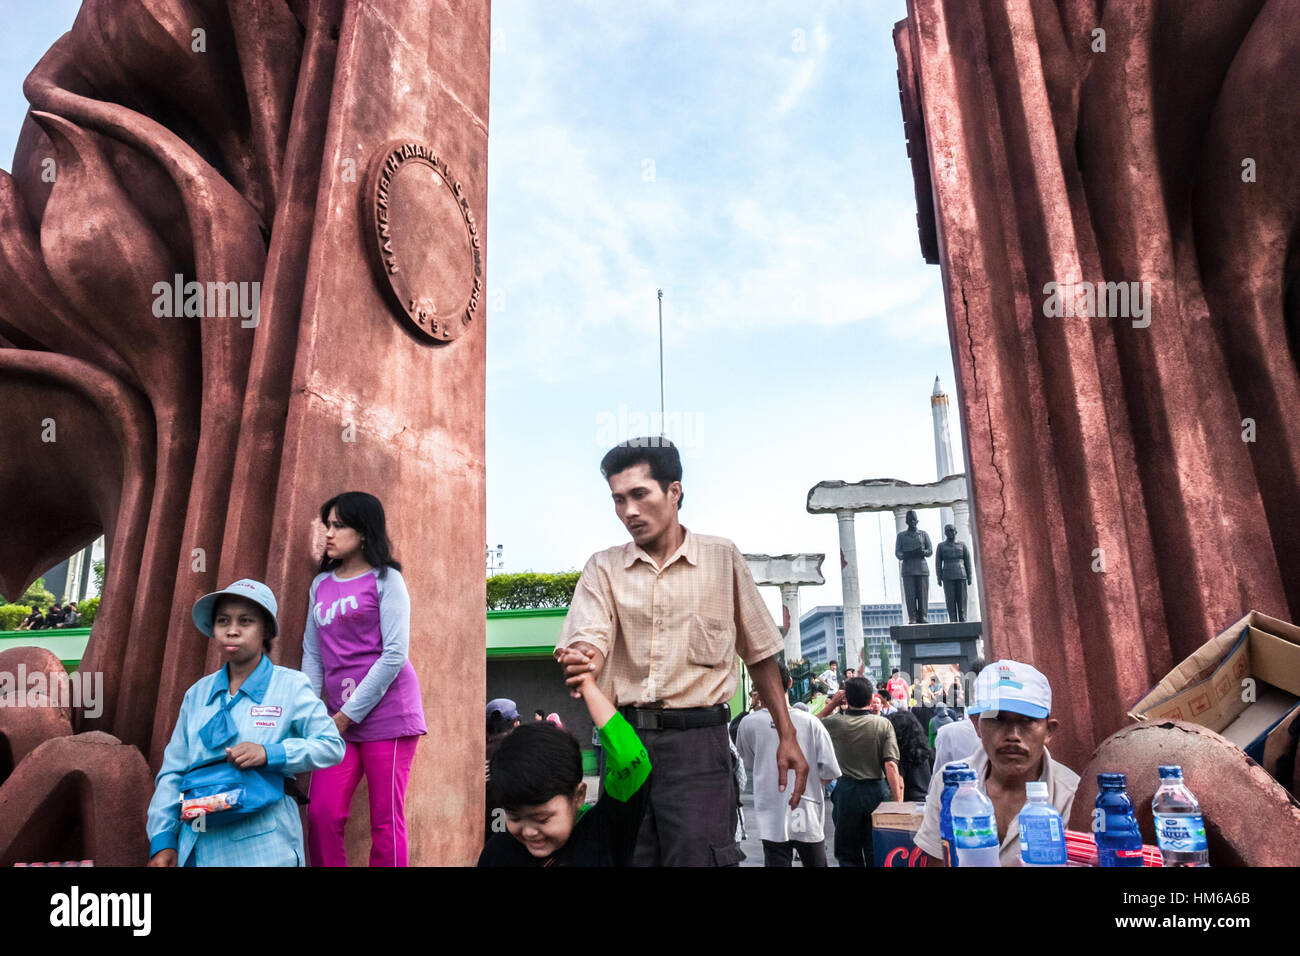 The crowd at the gate of Heroes Monument in Surabaya where Soekarno-Hatta monument stands. © Reynold Sumayku - Stock Image